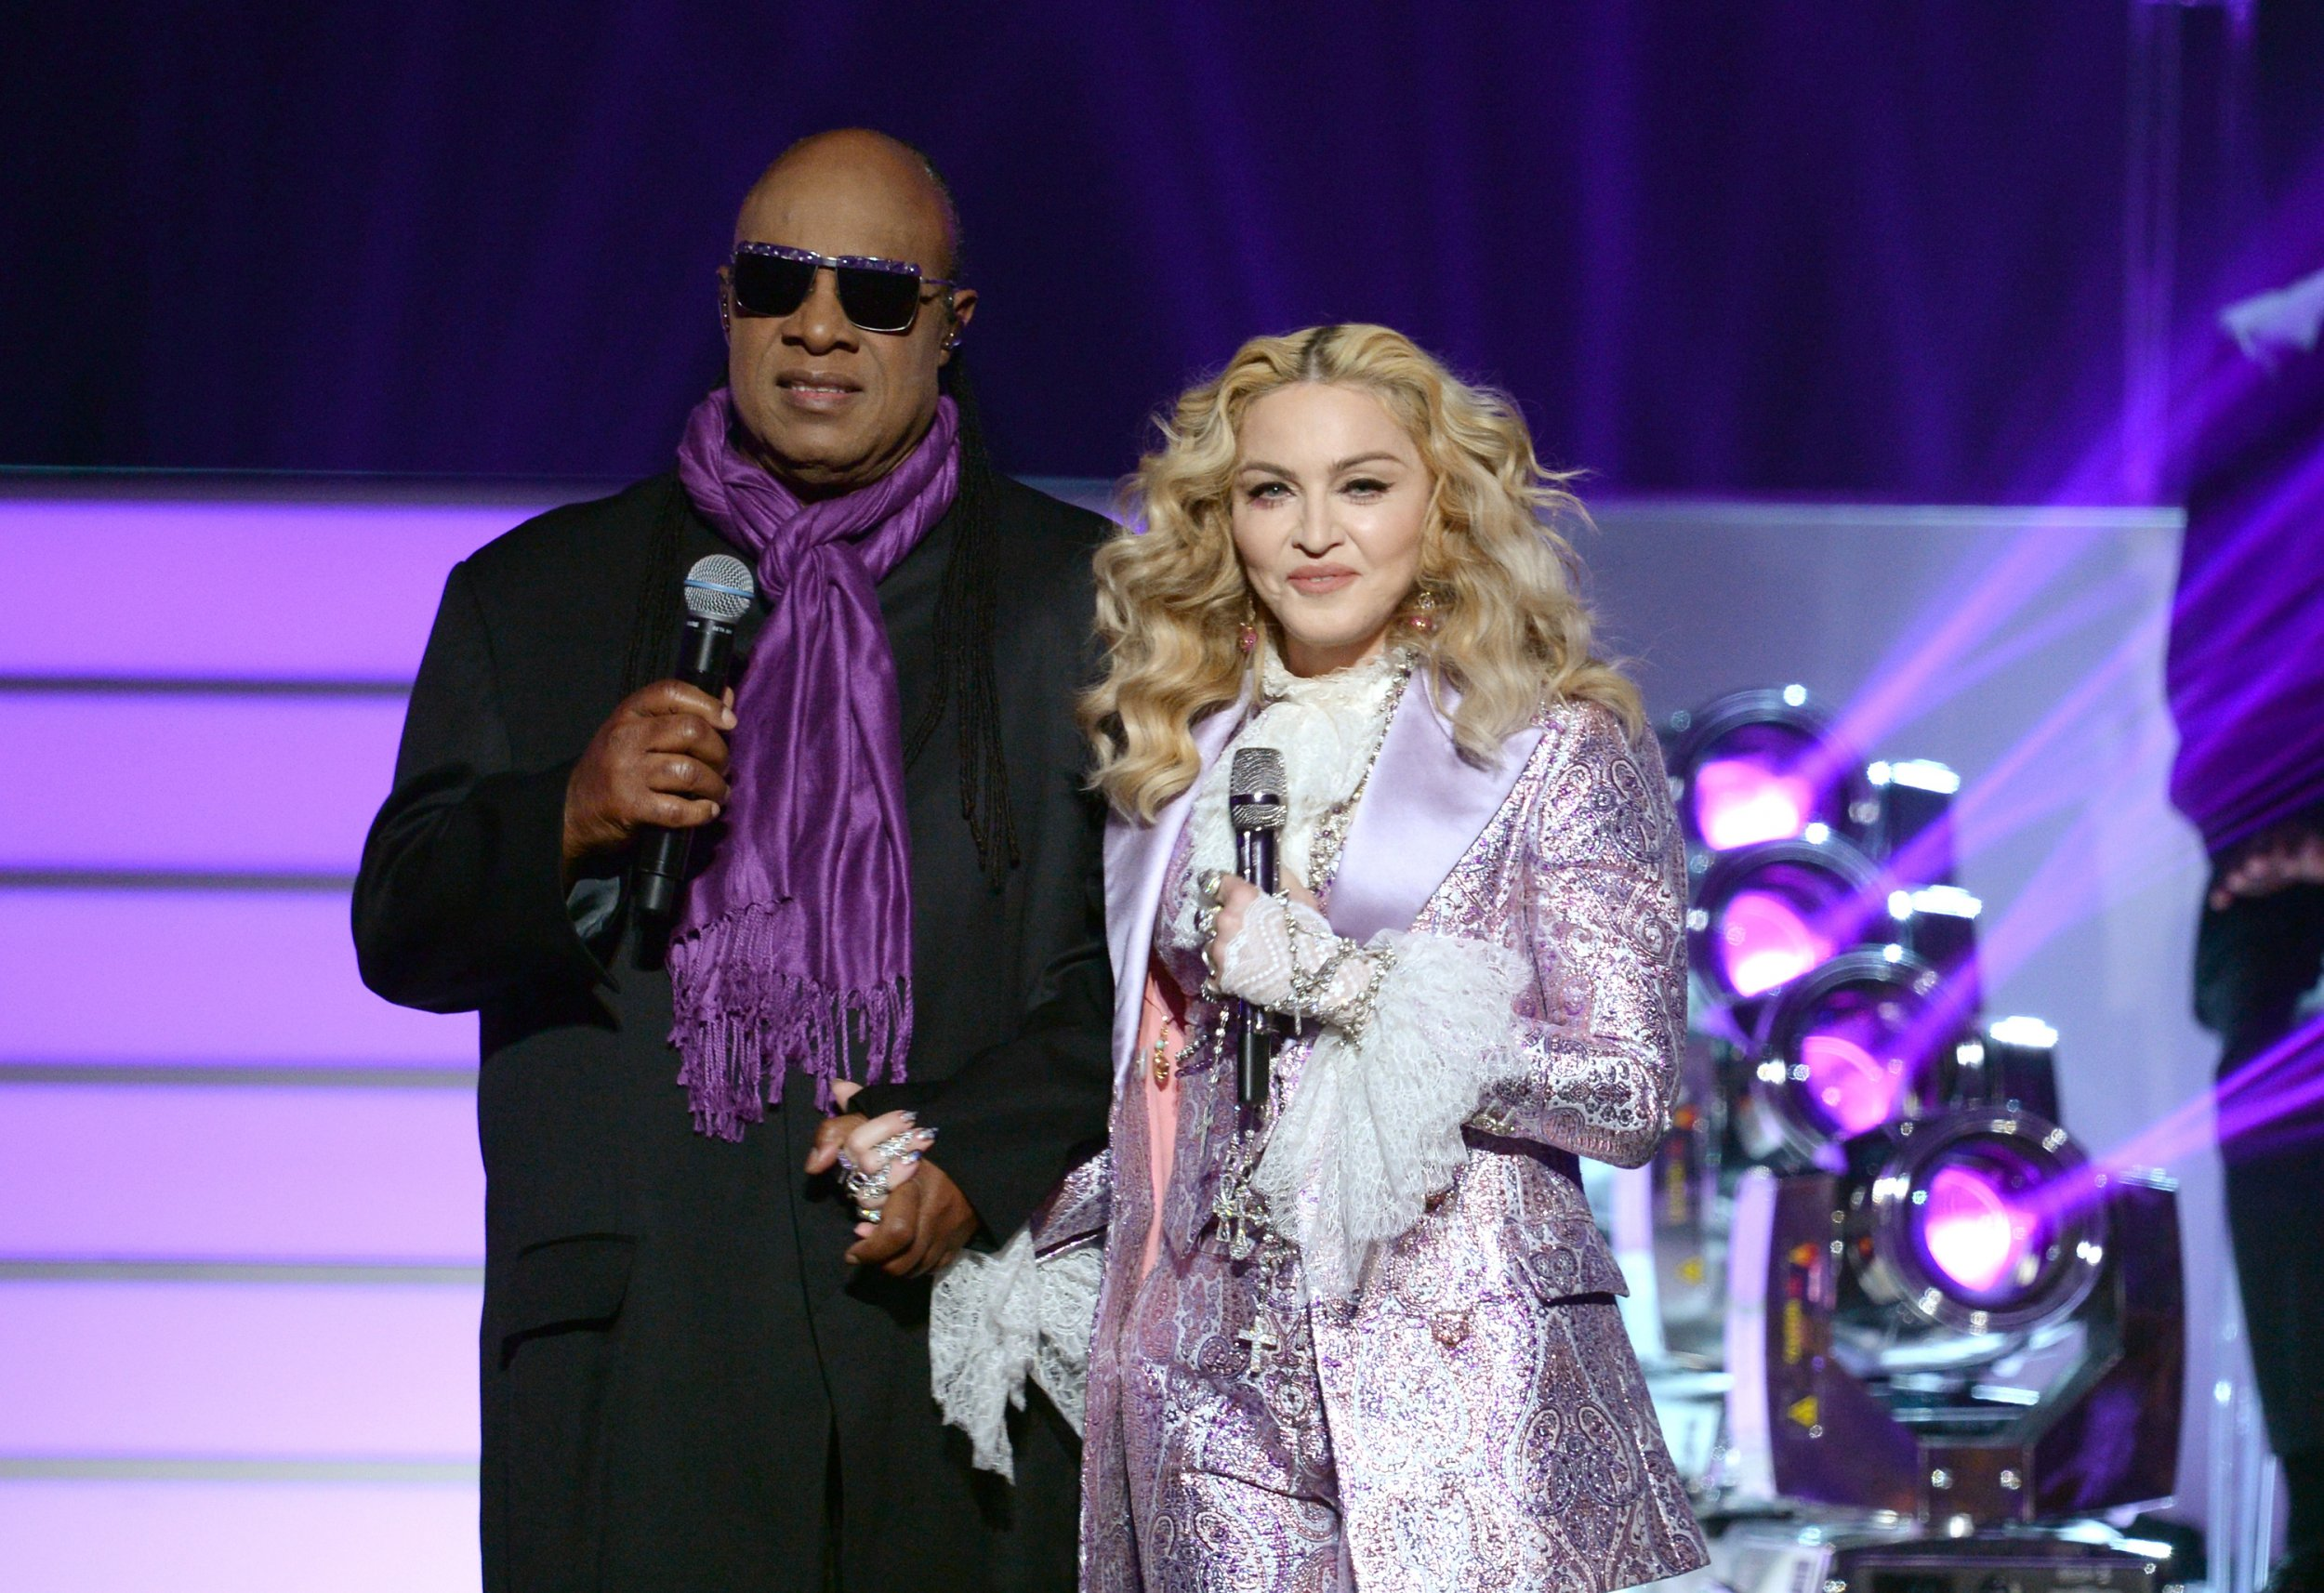 Prince tribute by Madonna and Stevie Wonder